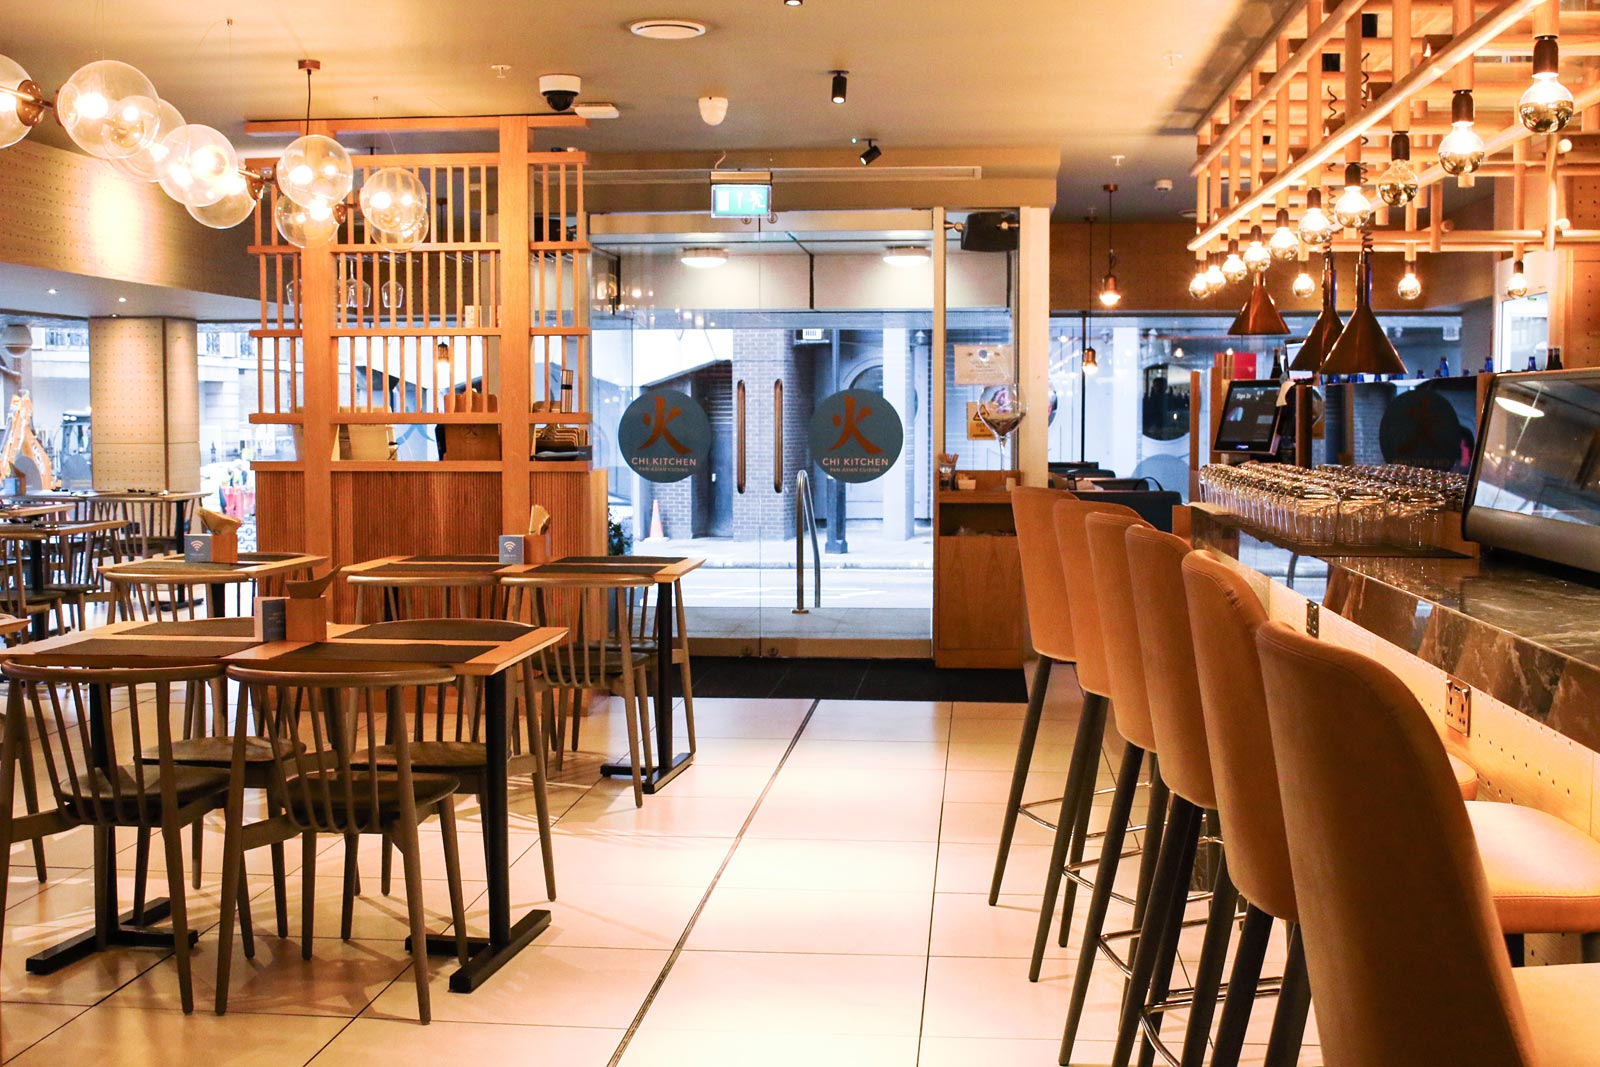 Grabbing Energy At Chi Kitchen On London's Busiest Shopping Street